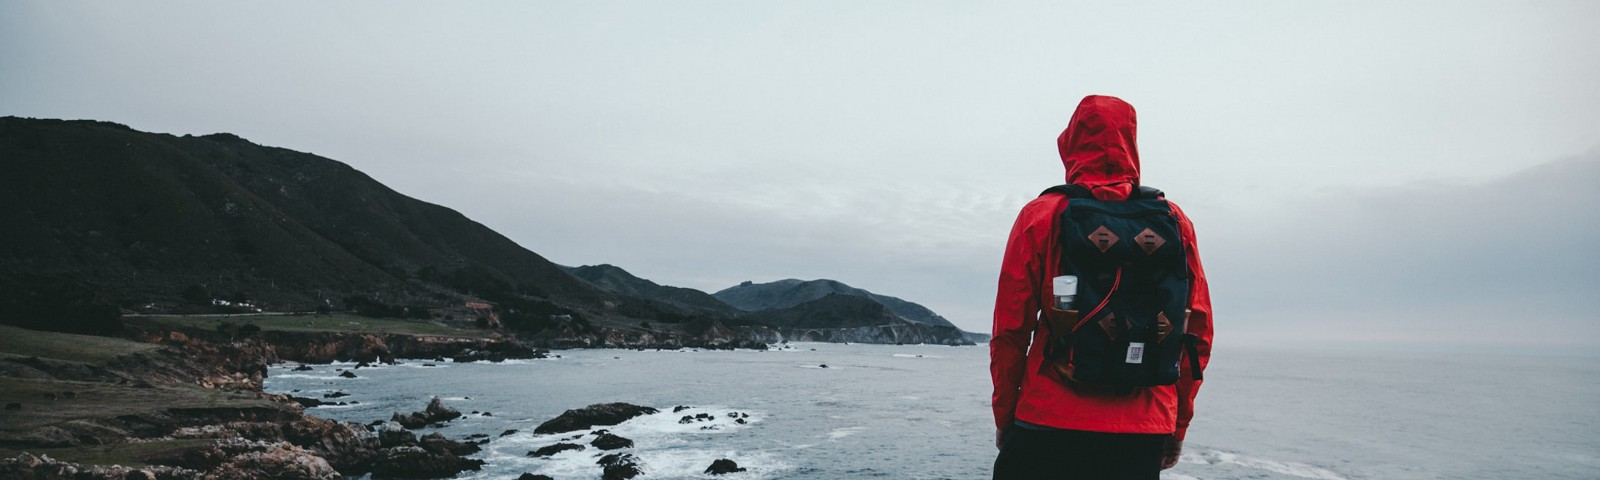 7 Powerful Life Lessons From Living Out of 2 Backpacks For Years—man with red jacket standing on lake